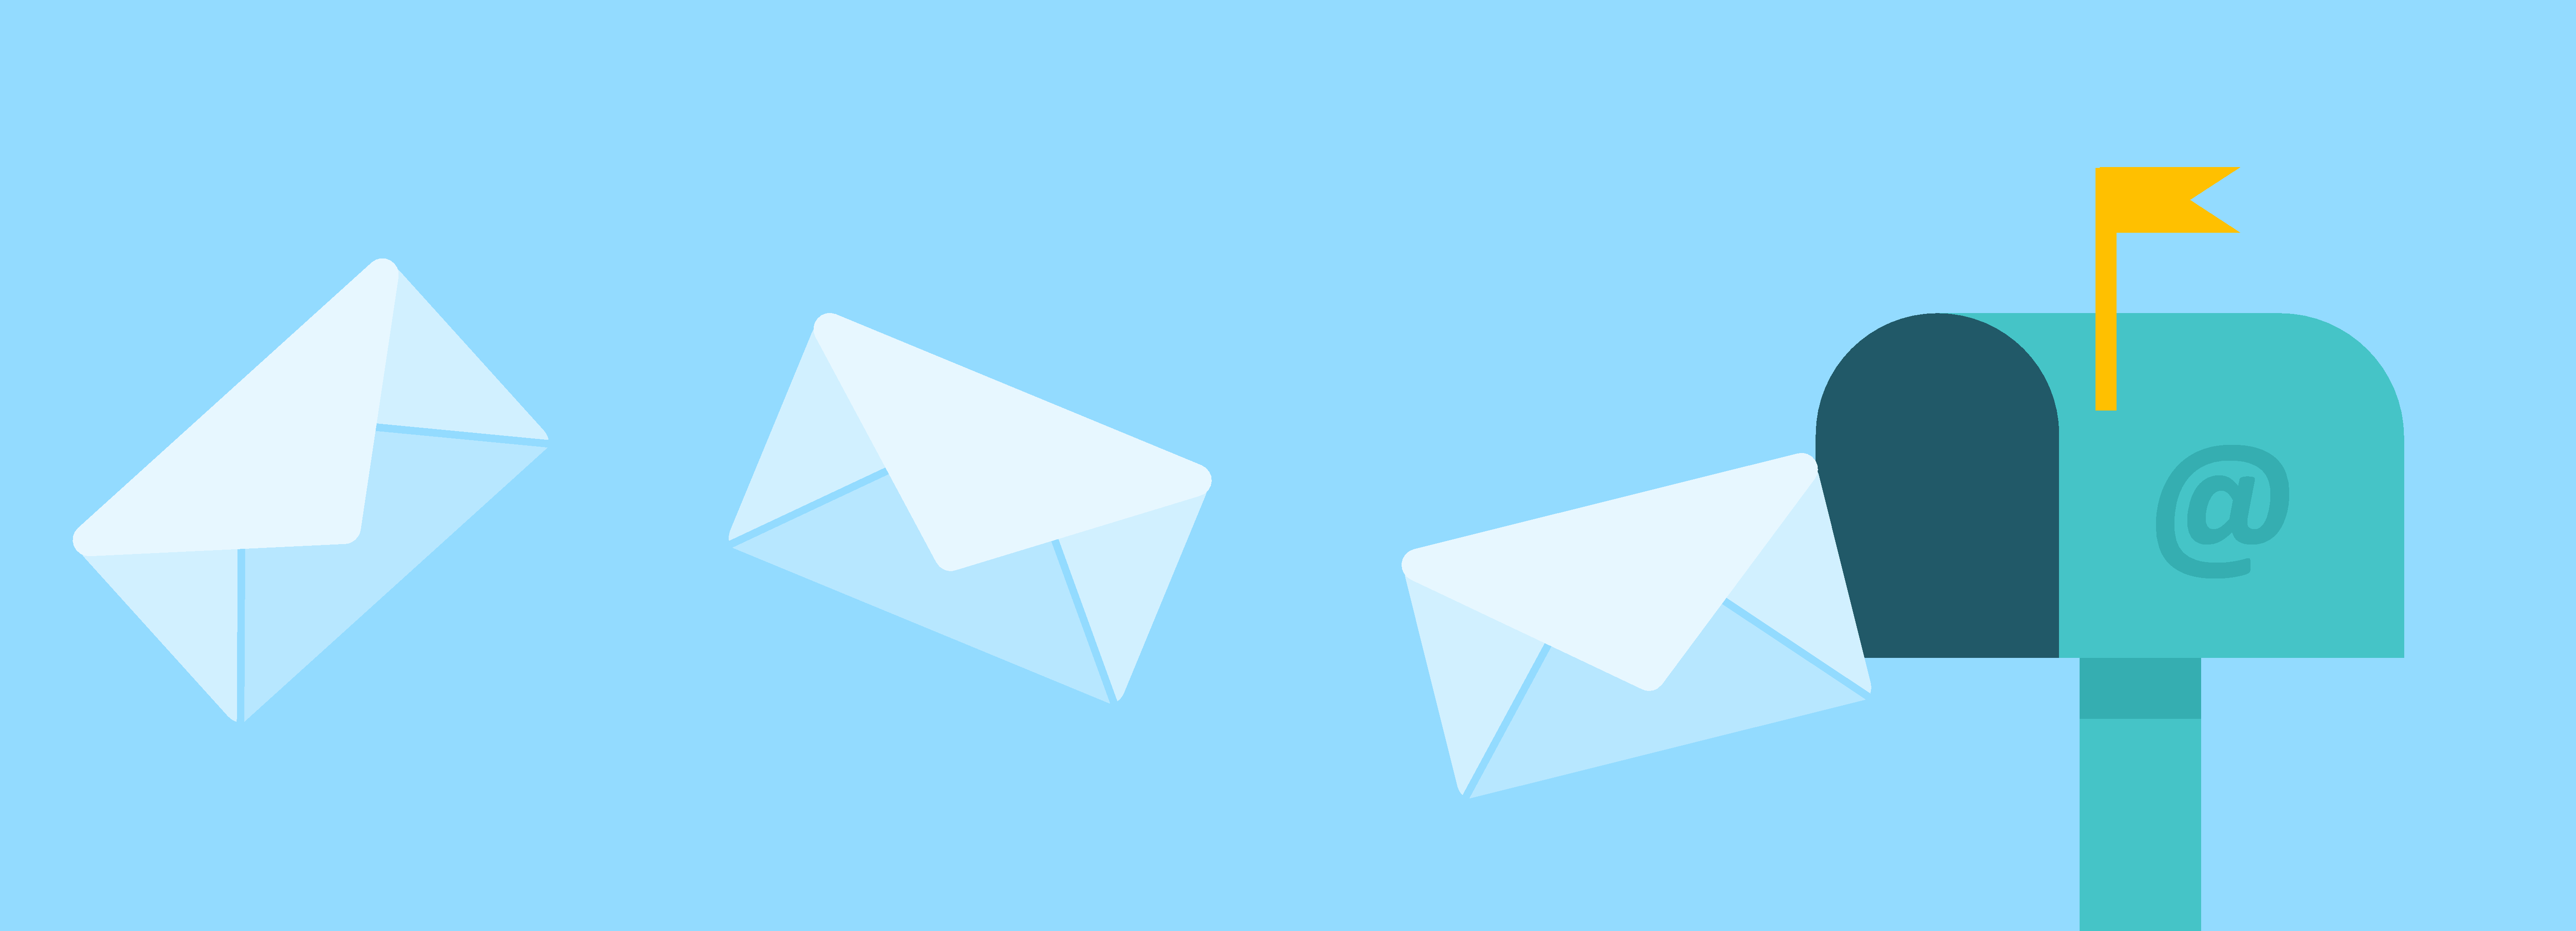 Mail envelopes flying into a mailbox